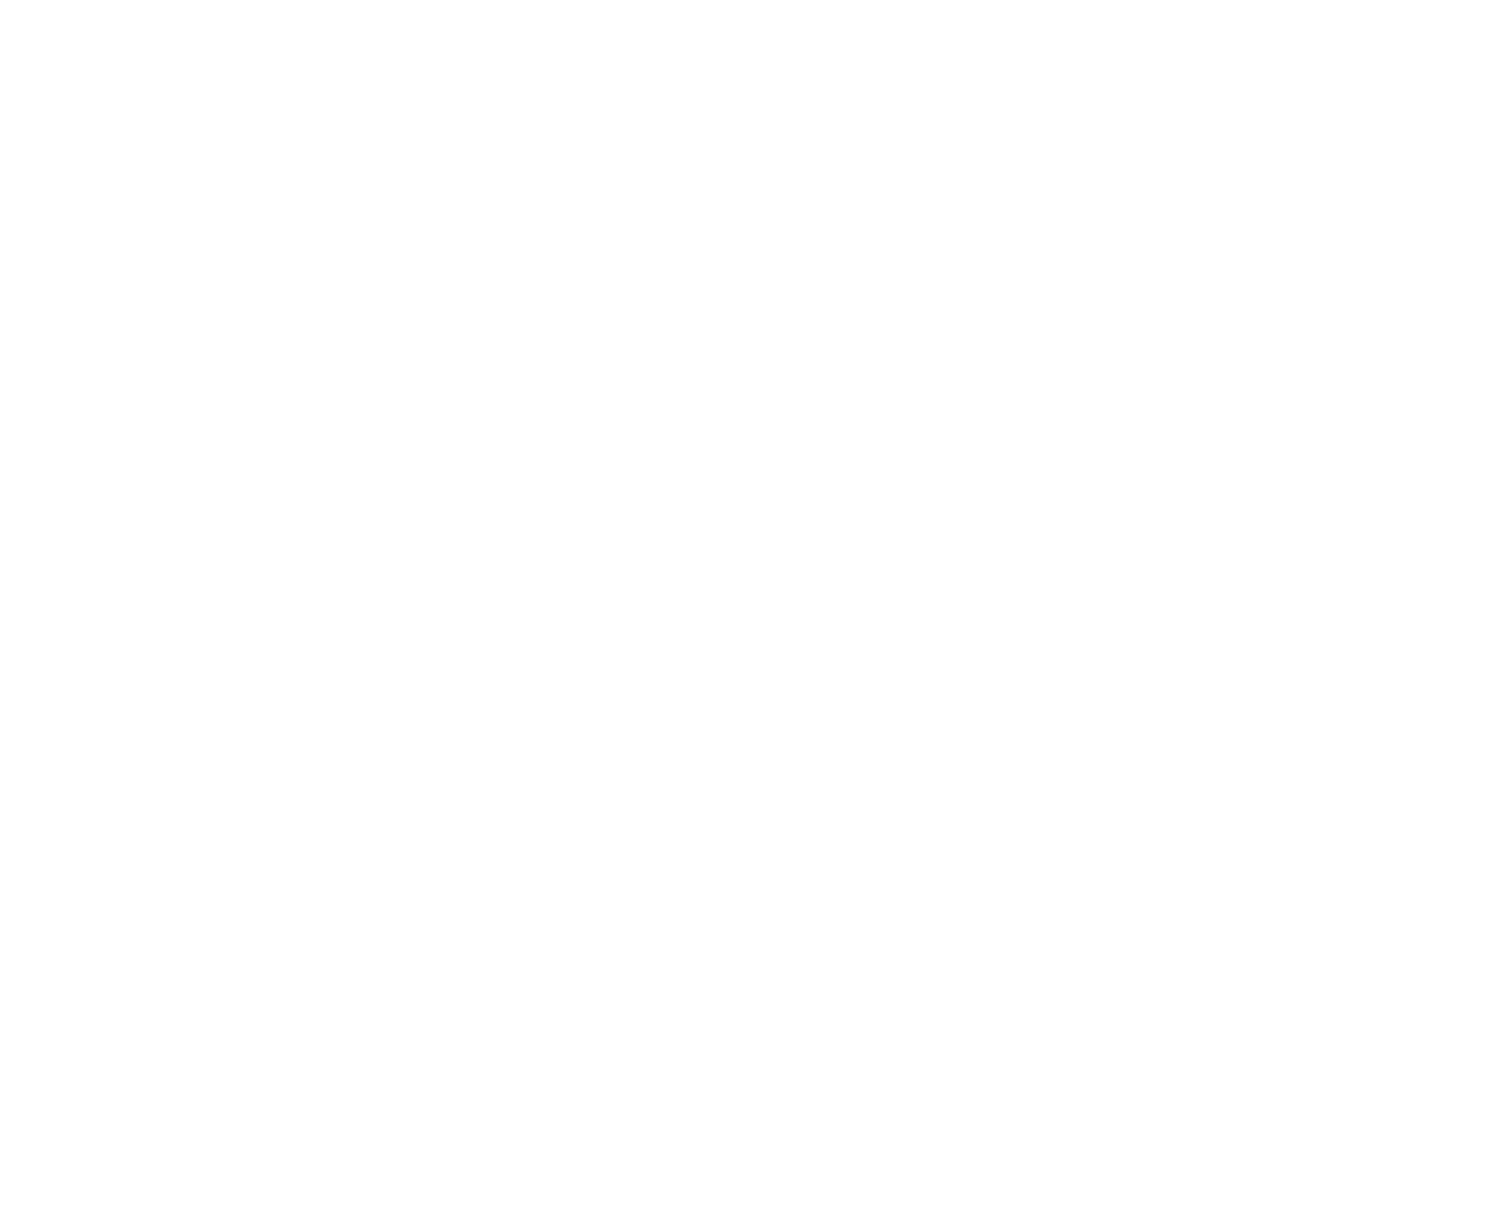 California Coffee Bar | Welcome! Expansive Coffee Menu & Neighborhood Events